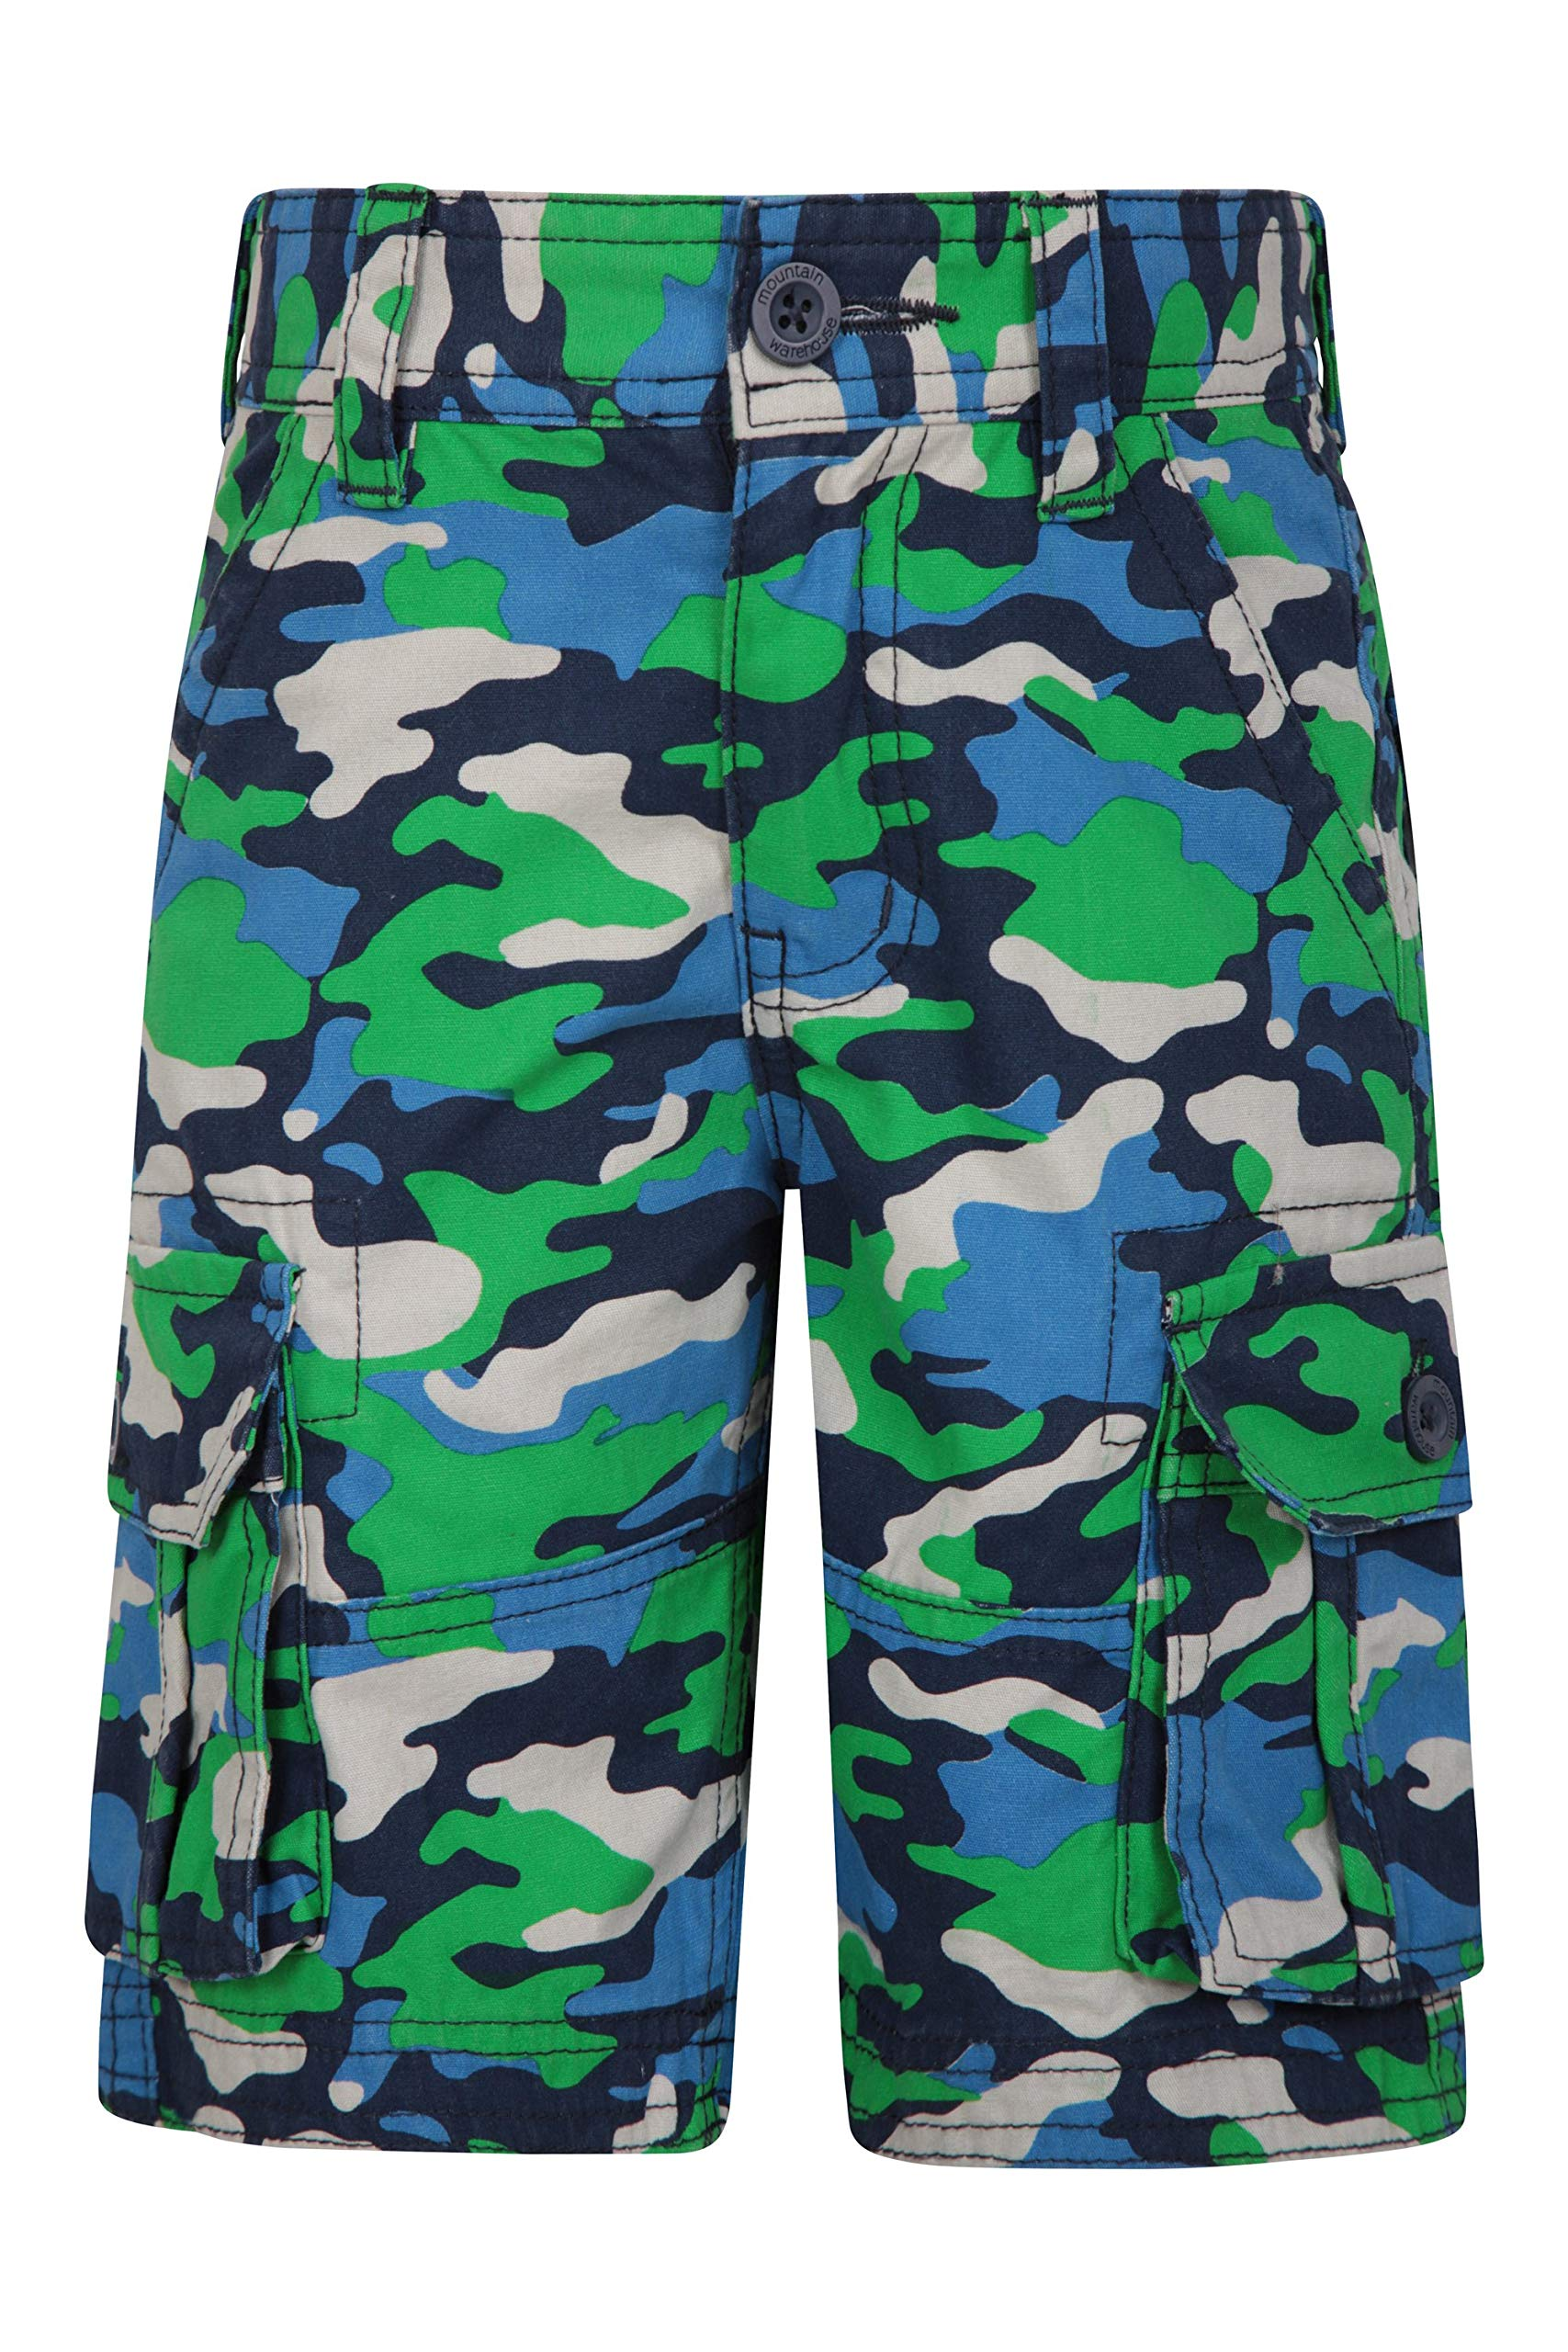 Mountain Warehouse Kids Camo Cargo Shorts - 100% Cotton Summer Pants Green 13 Years by Mountain Warehouse